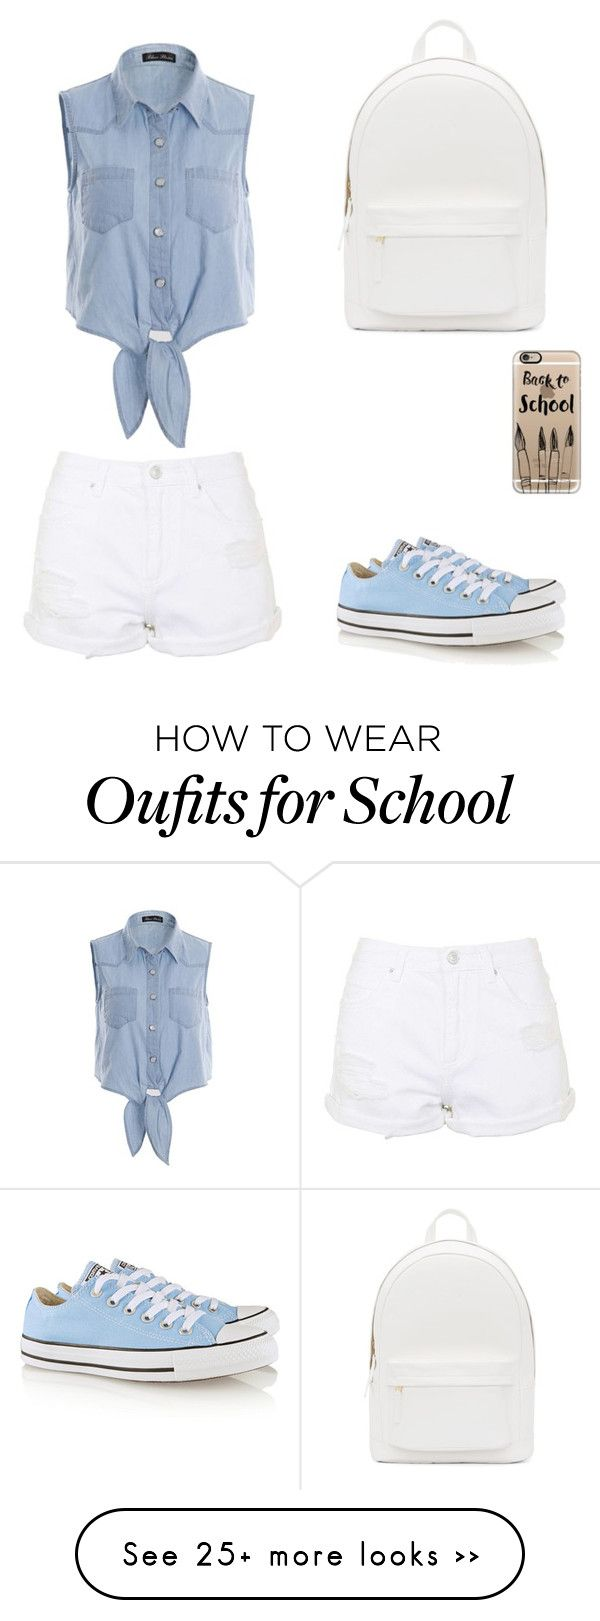 """Back to school "" by elizuyen on Polyvore featuring PB 0110, Topshop, Converse and Casetify"